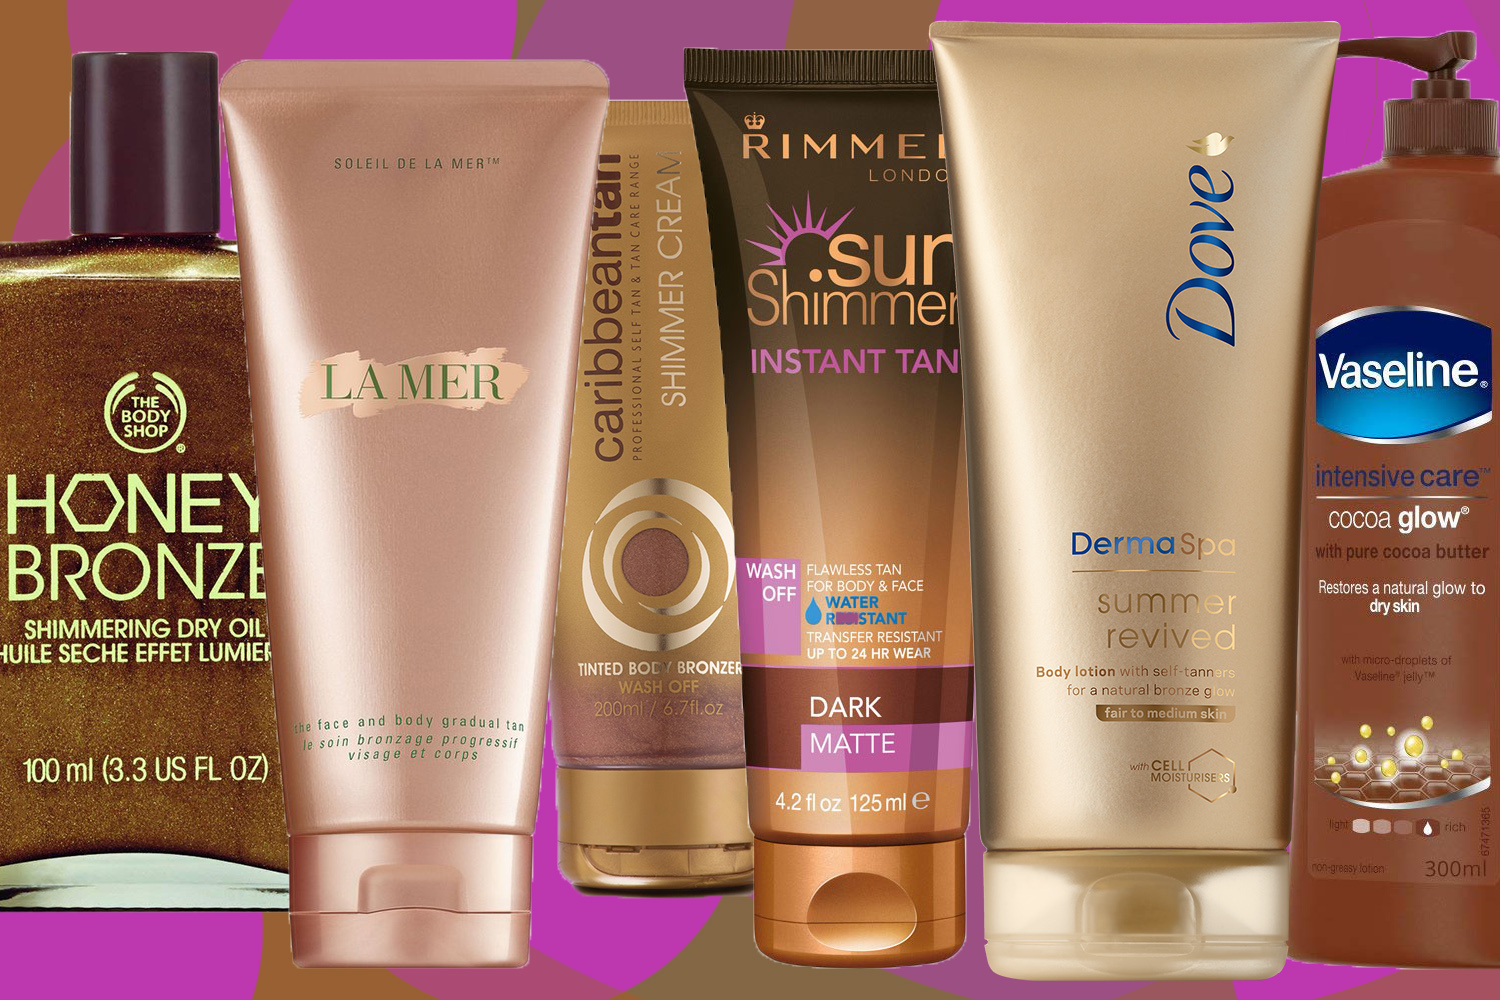 MUST HAVE SUMMER GLOW AND SHIMMER BODY OILS AND LOTION